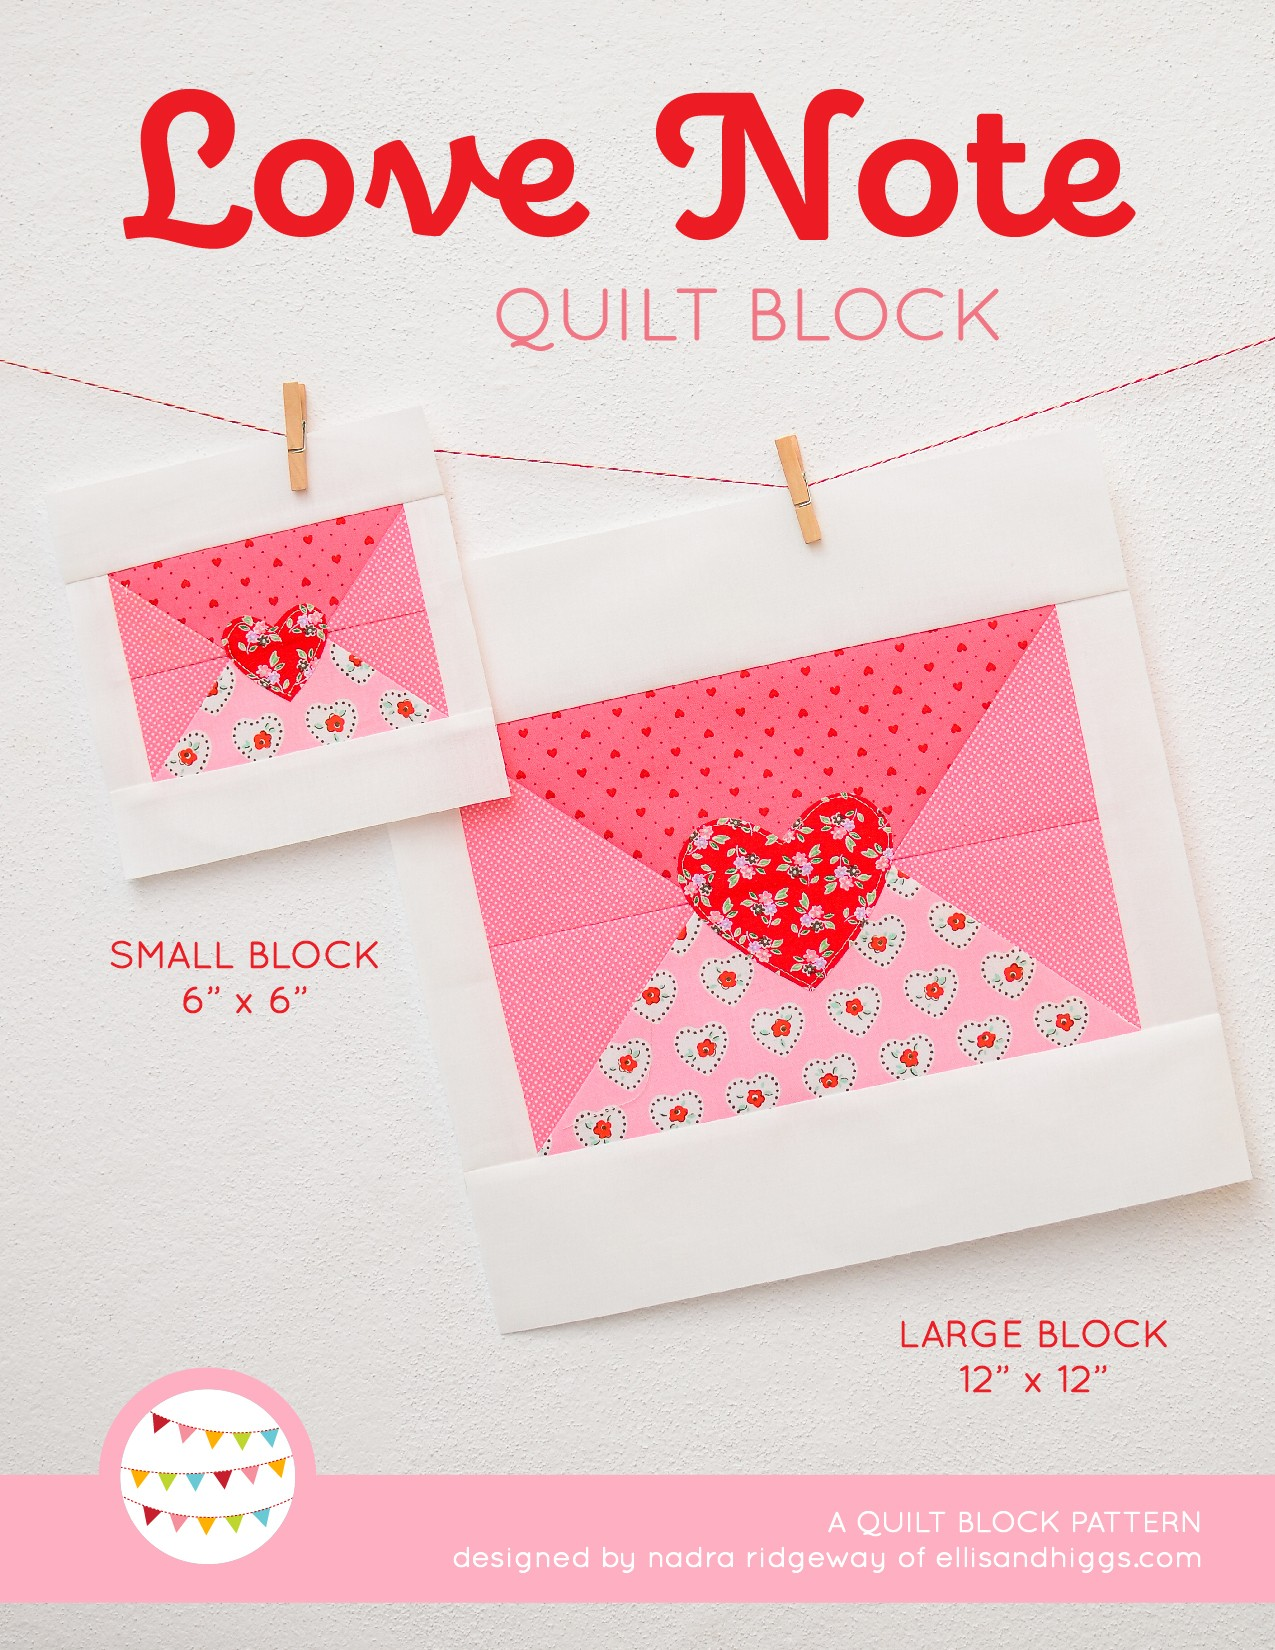 Love Letter quilt block in two sizes hanging on a wall